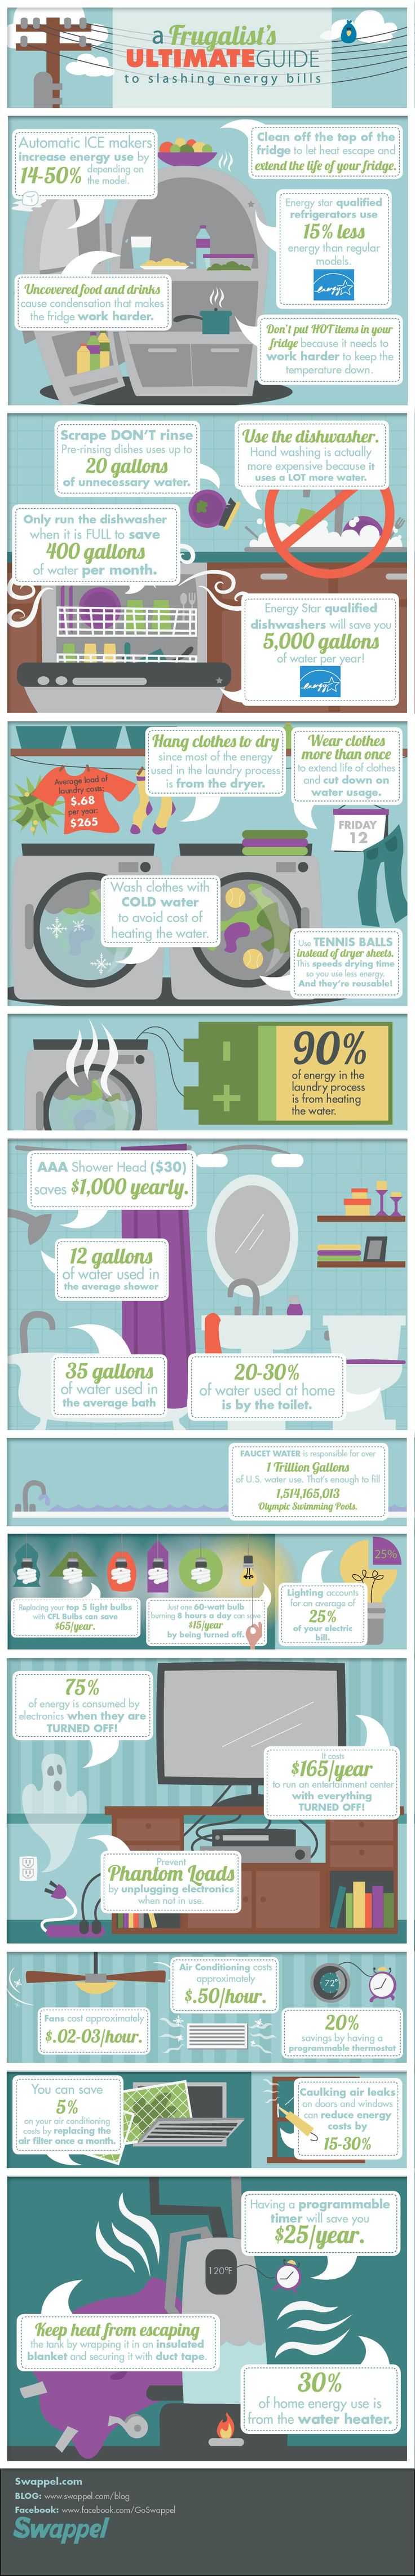 Ways on how to save $ on electricity/water bills in a nifty infographic